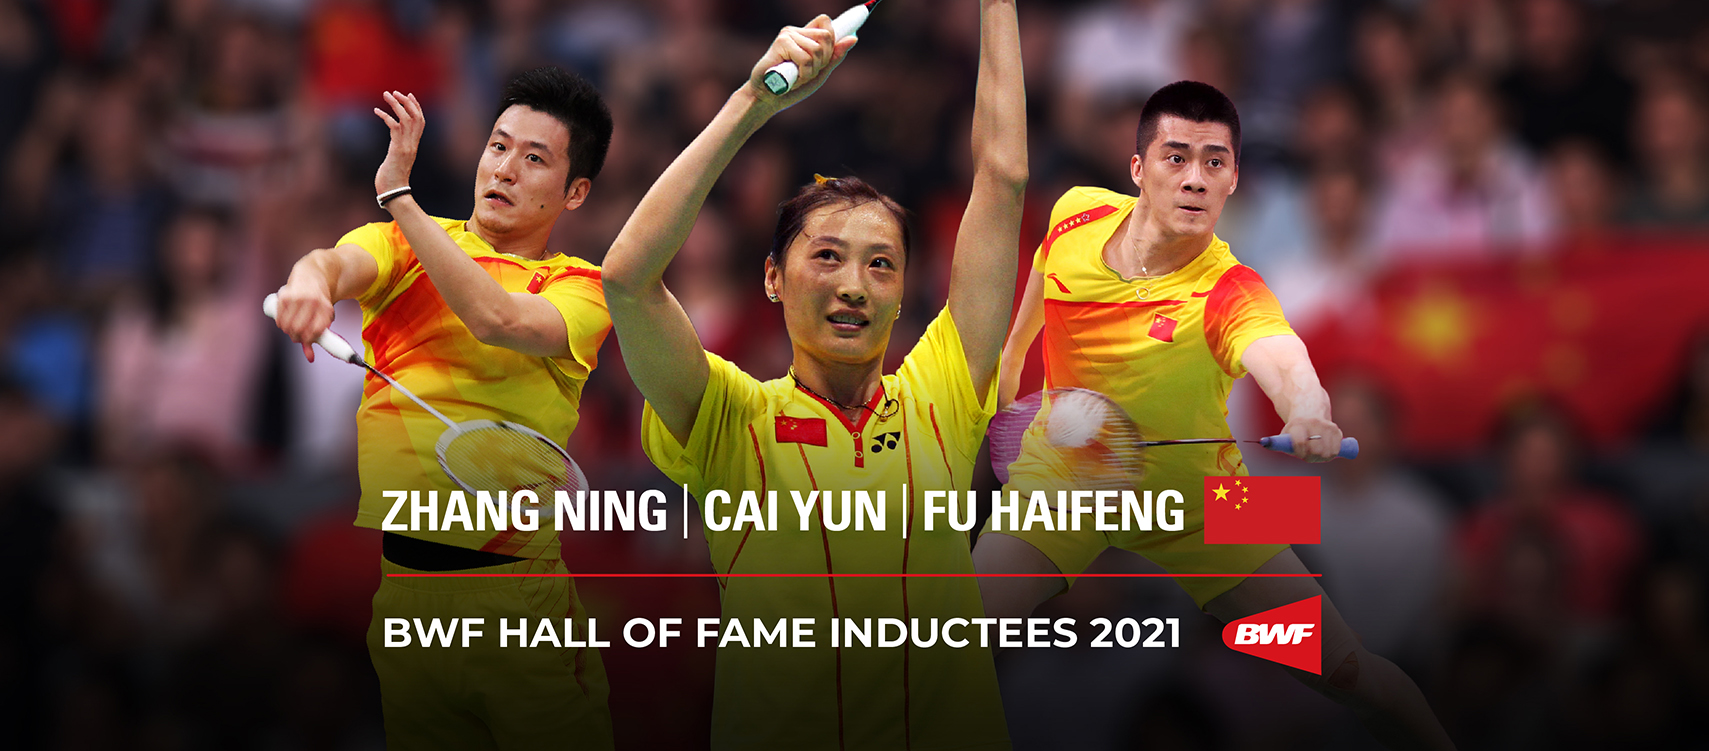 BWF Hall of Fame Inductees 2021